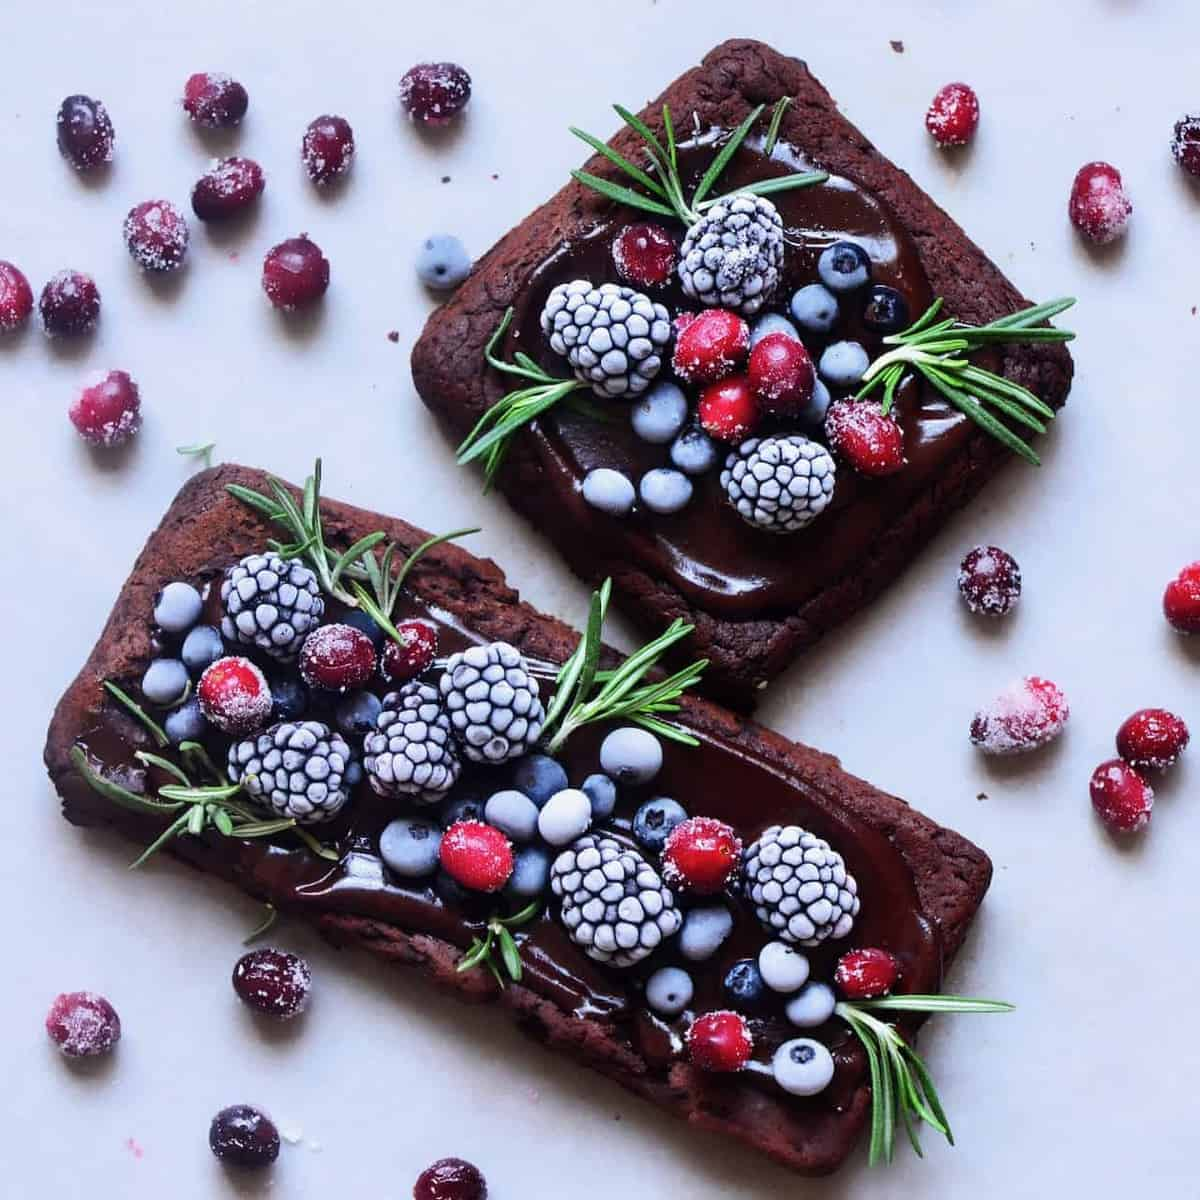 brownies topped with frozen berries